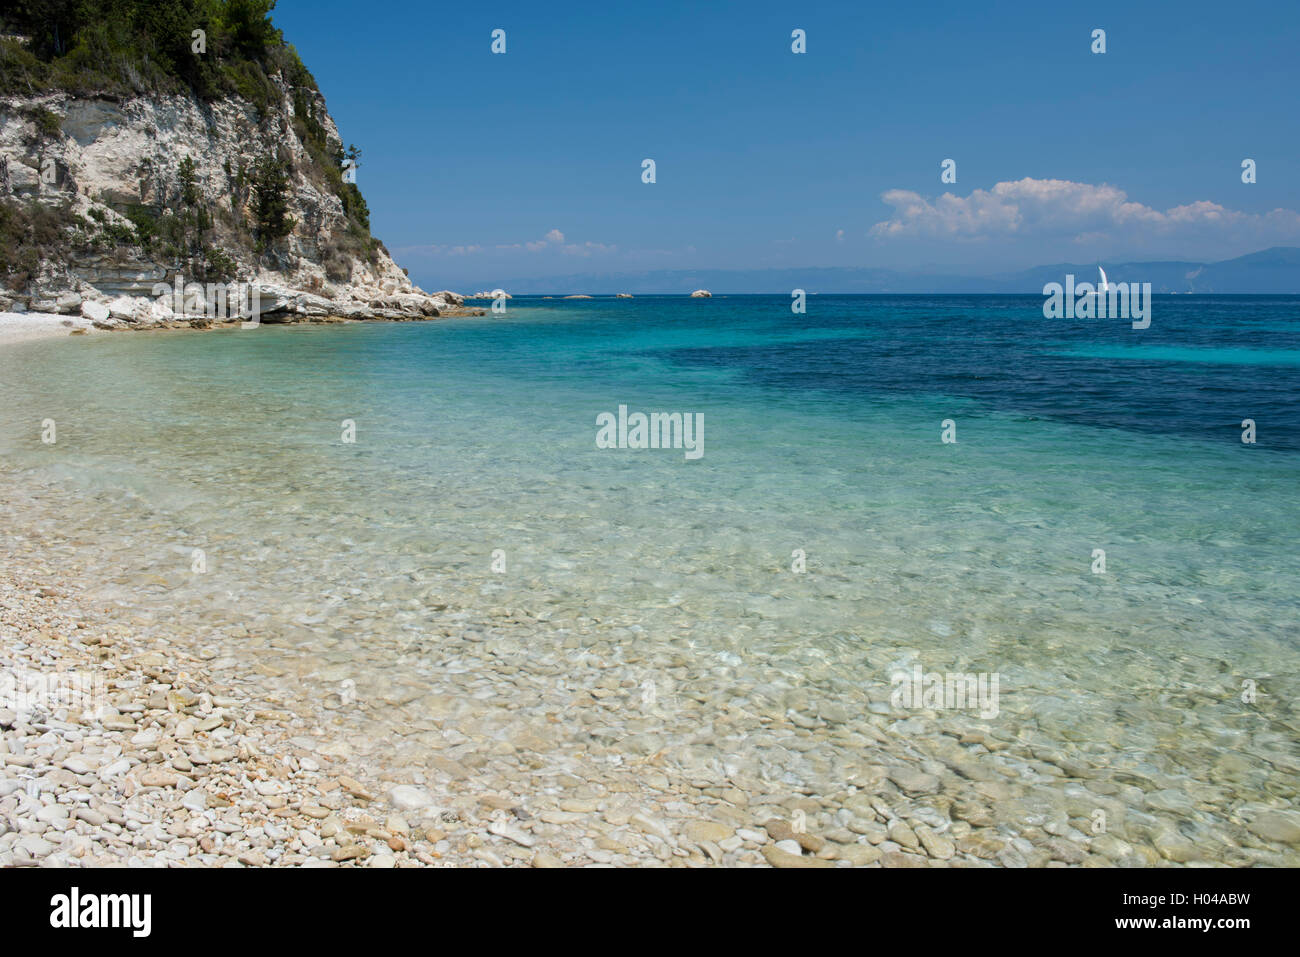 Paxos, The Ionian Islands, Greece, Europe - Stock Image